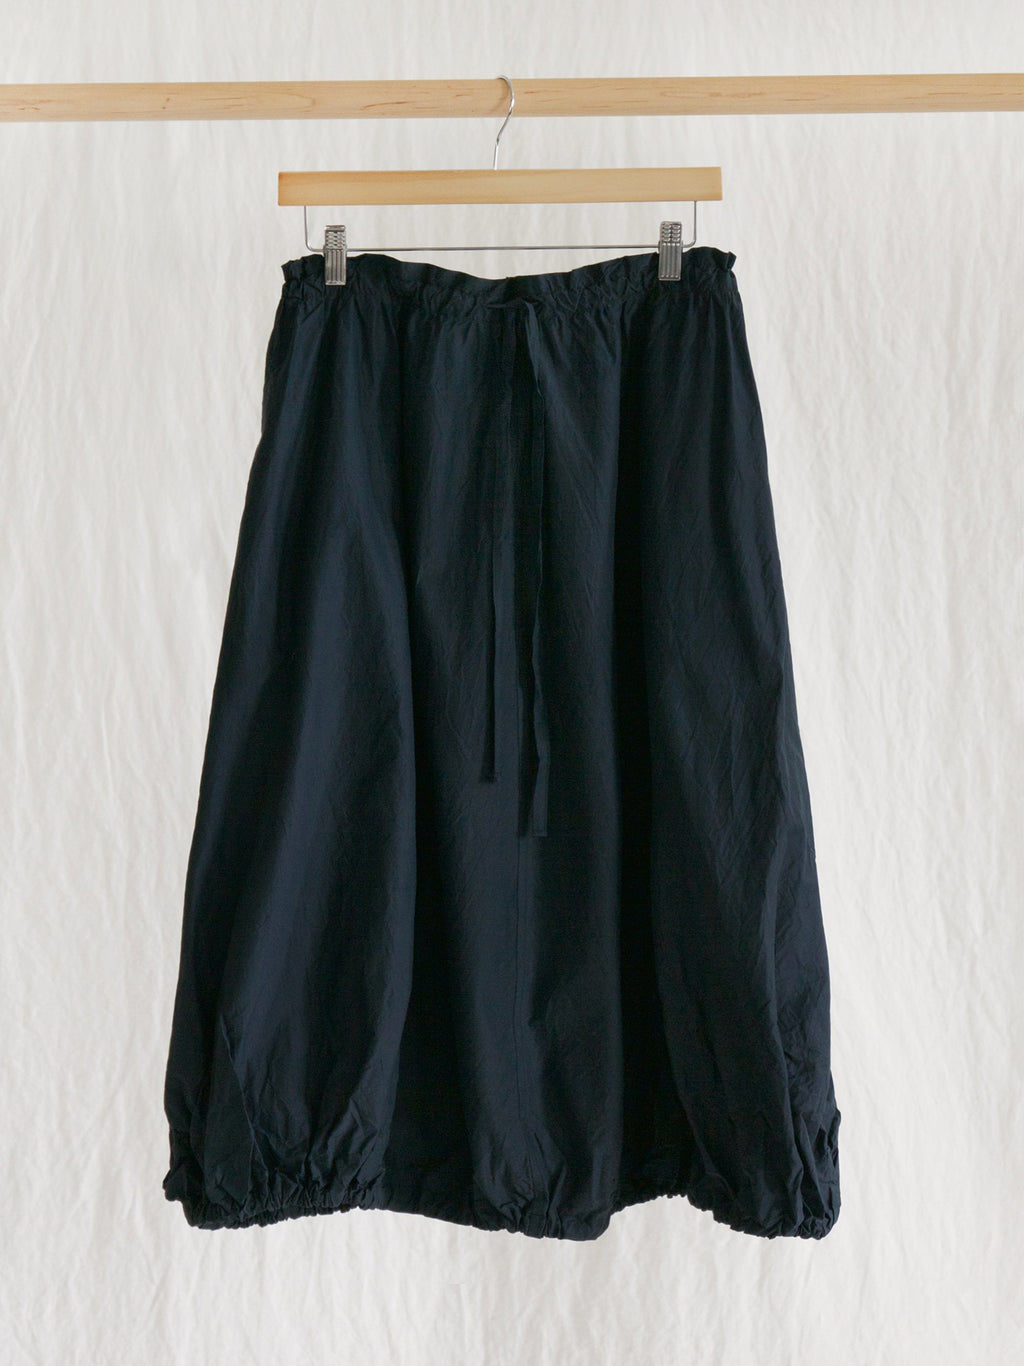 Namu Shop - ts(s) Cotton Silk String Balloon Skirt